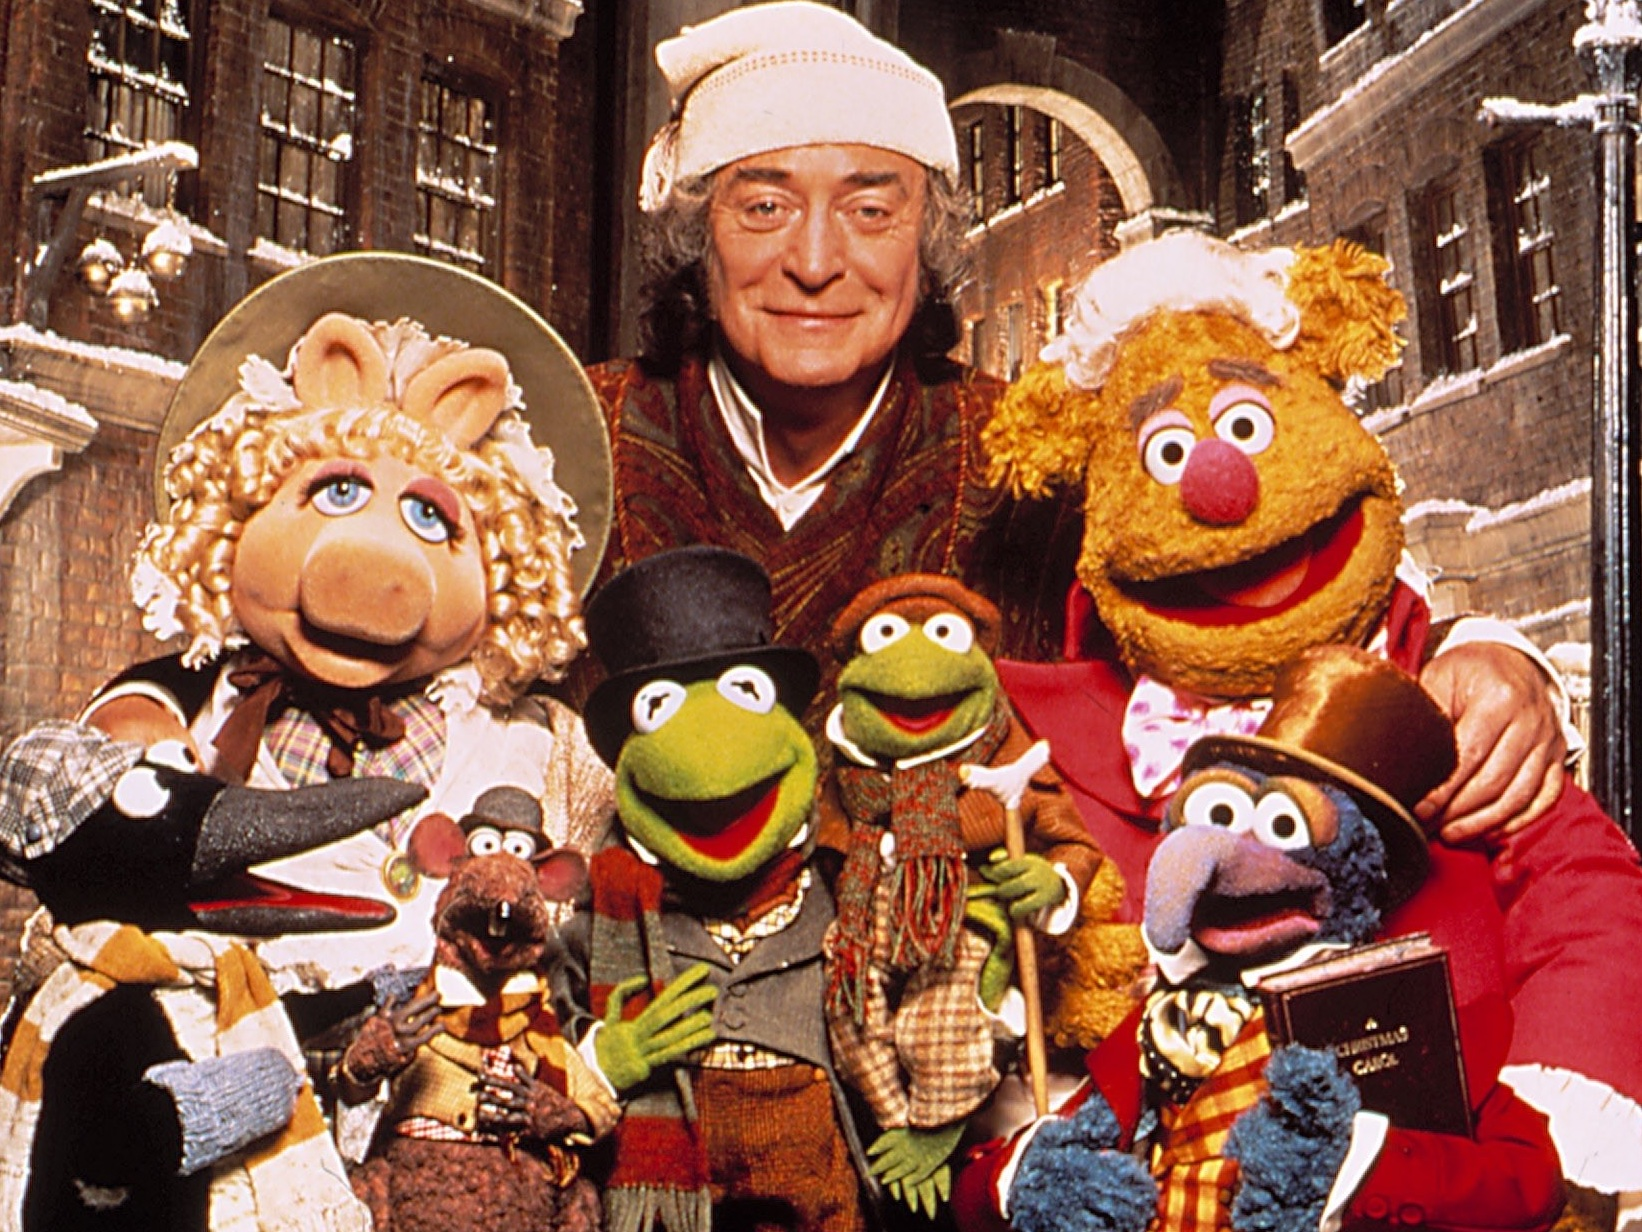 Online Selling Sites >> The Muppet Christmas Carol archive review: deconstructed Dickens | Sight & Sound | BFI